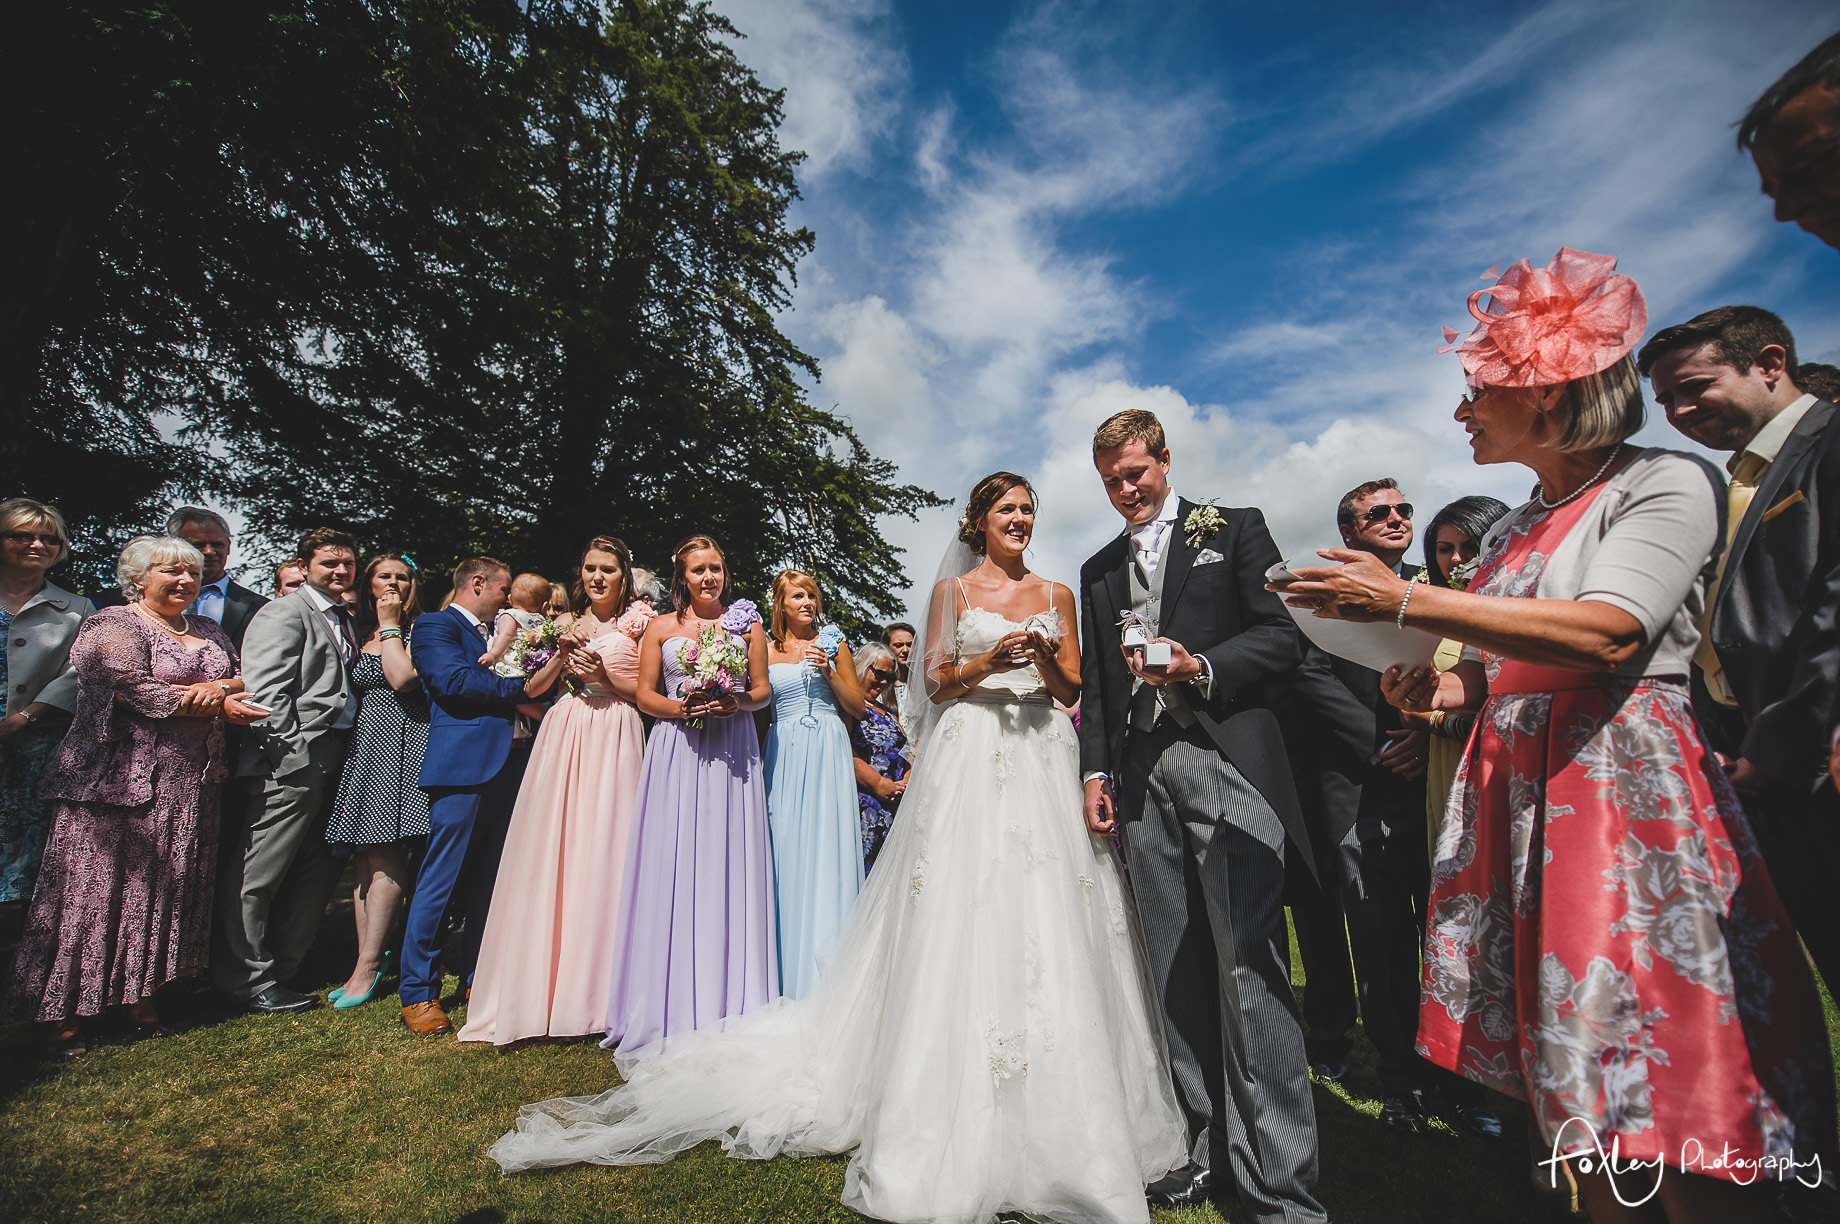 Claire and James' Wedding at Mitton Hall 111